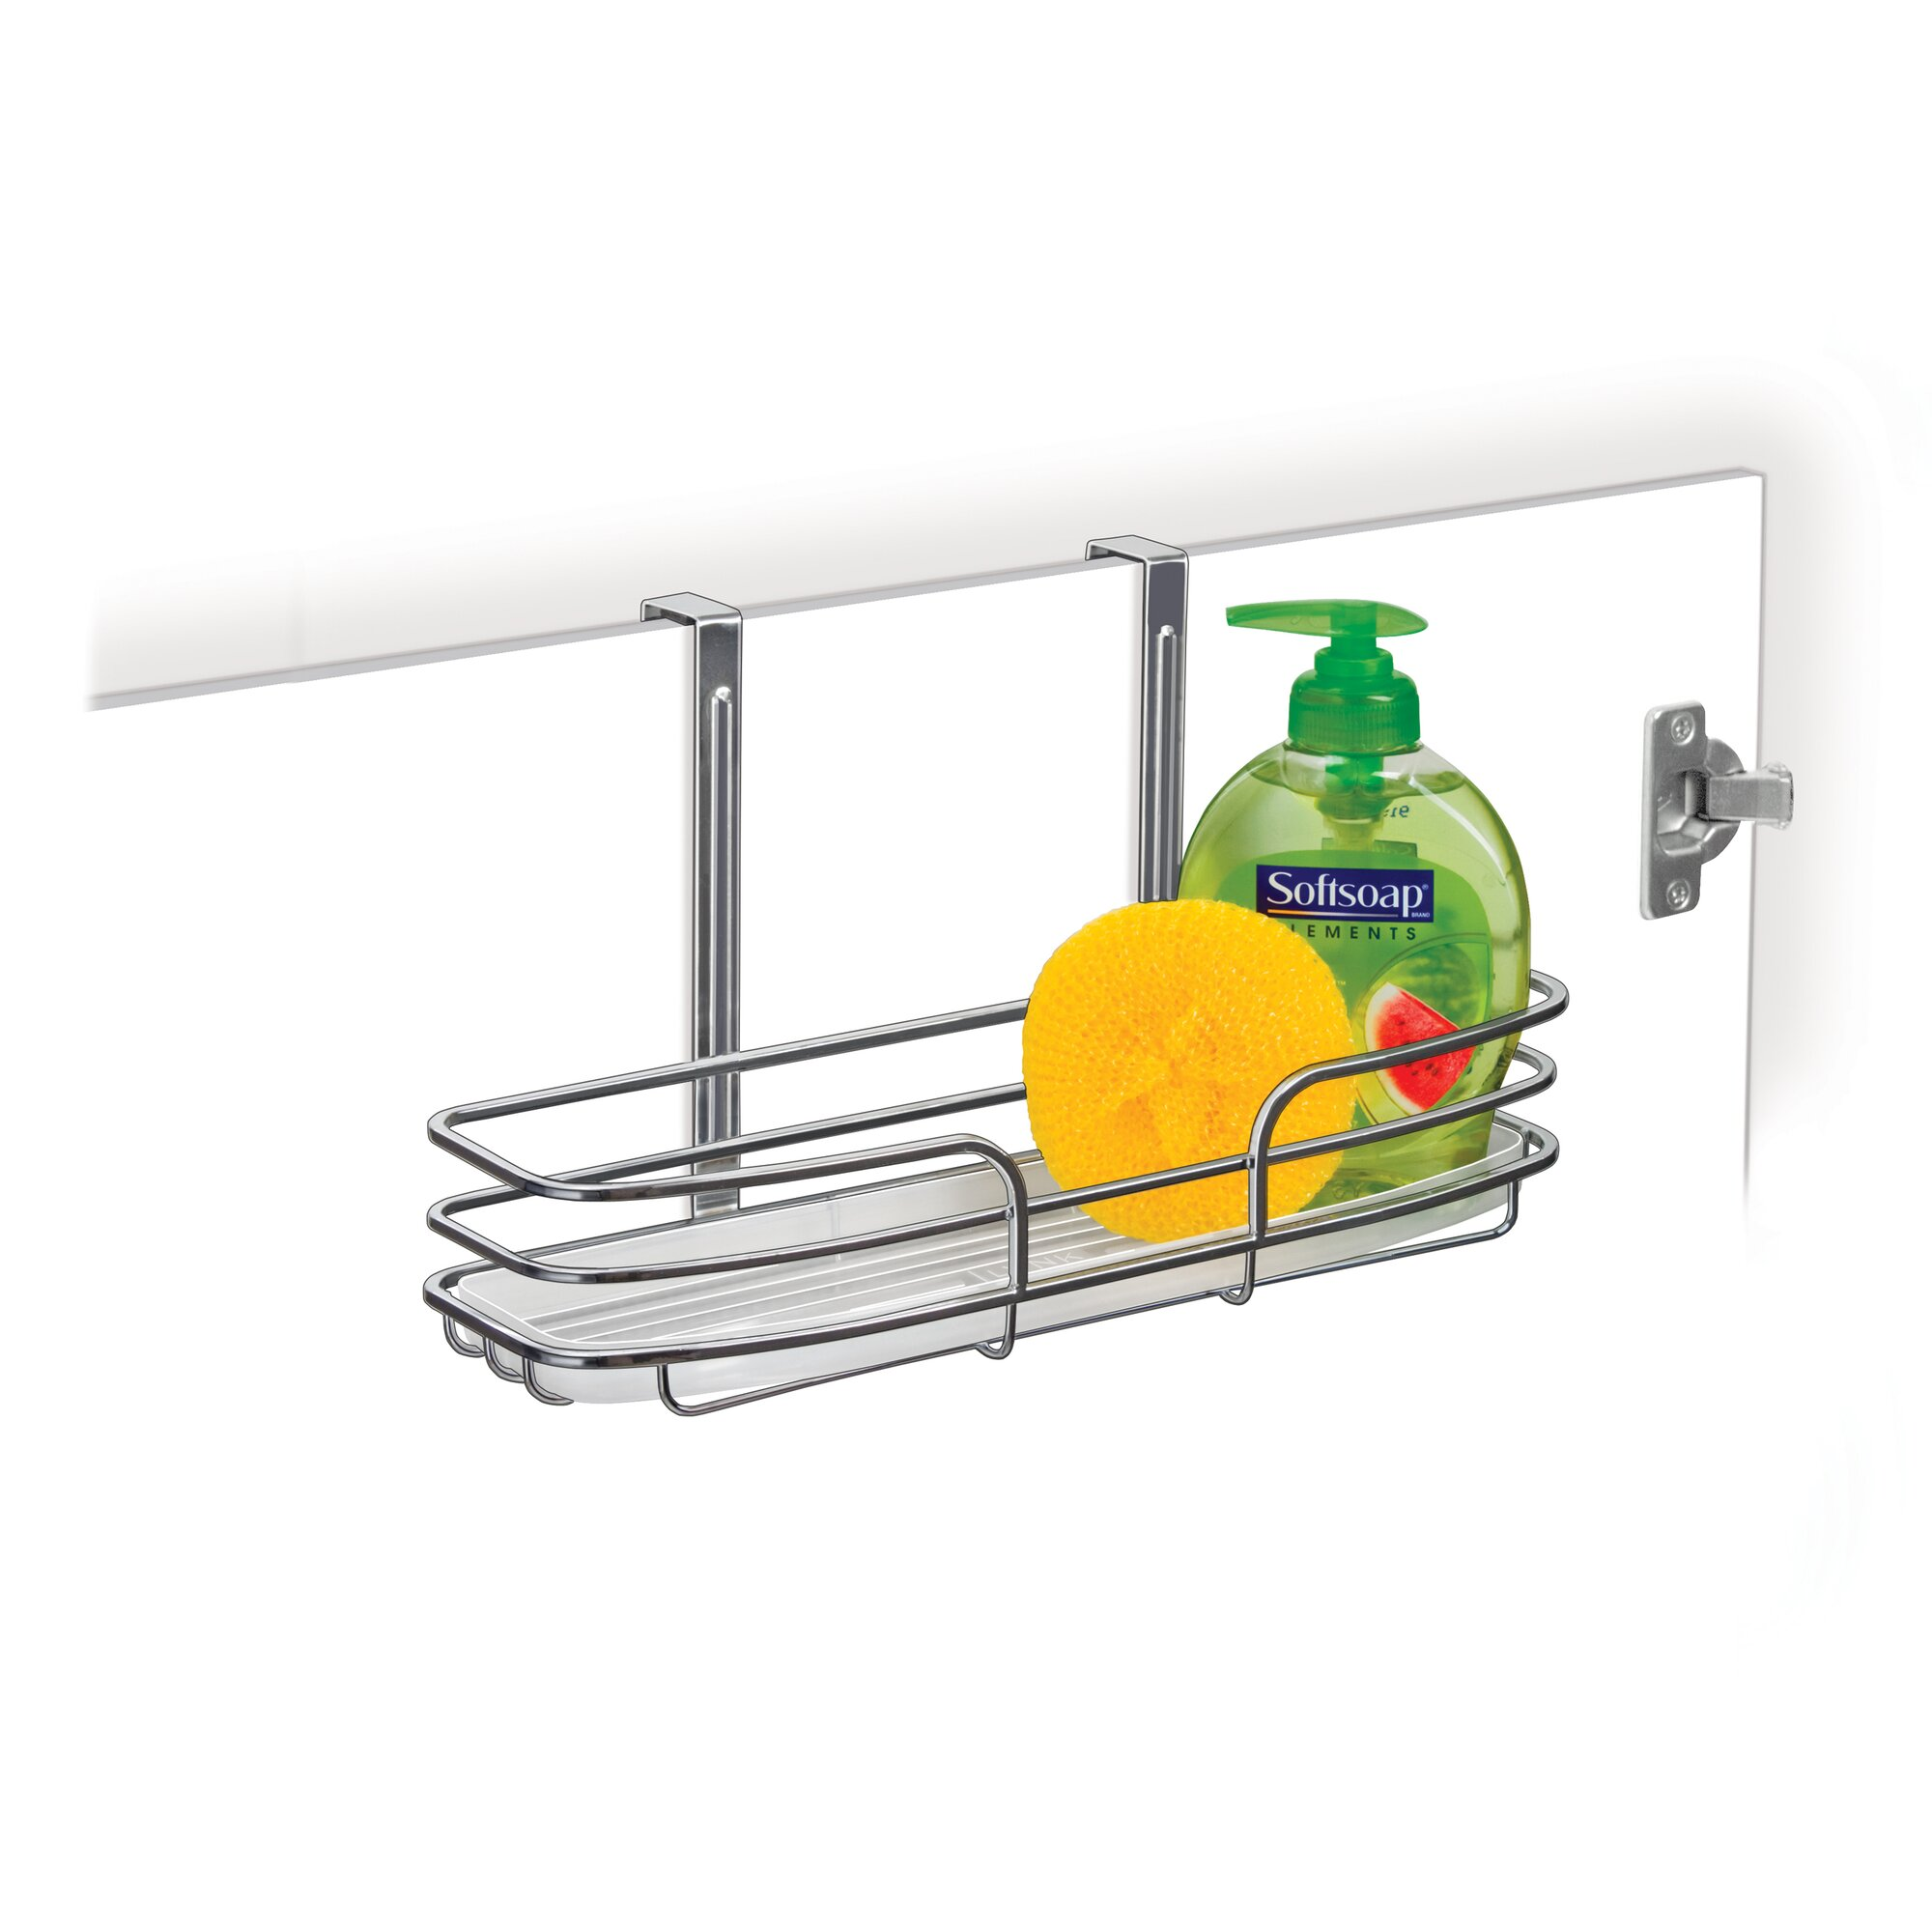 Bathroom cabinet door organizer - Single Over Cabinet Door Organizer